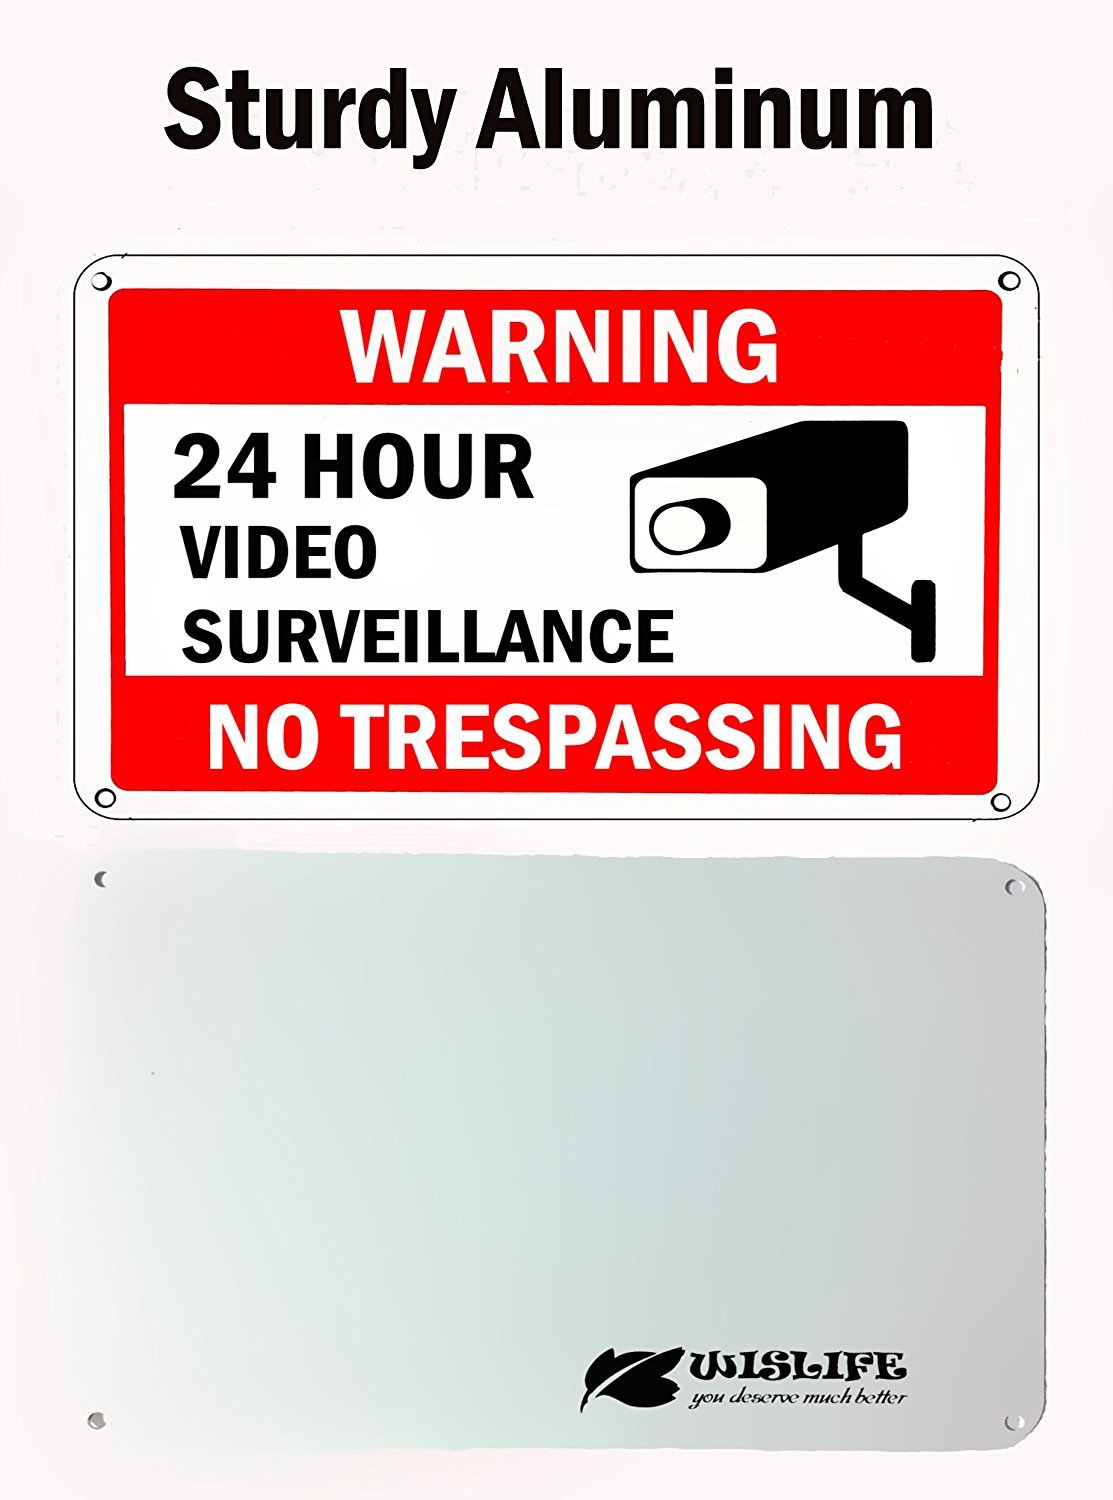 WISLIFE Video Surveillance Sign Set, 2 (10'' X 7'') Aluminum Warning Signs & 6 (6''X6'') Window Stickers, Video Security Signs by WISLIFE (Image #3)